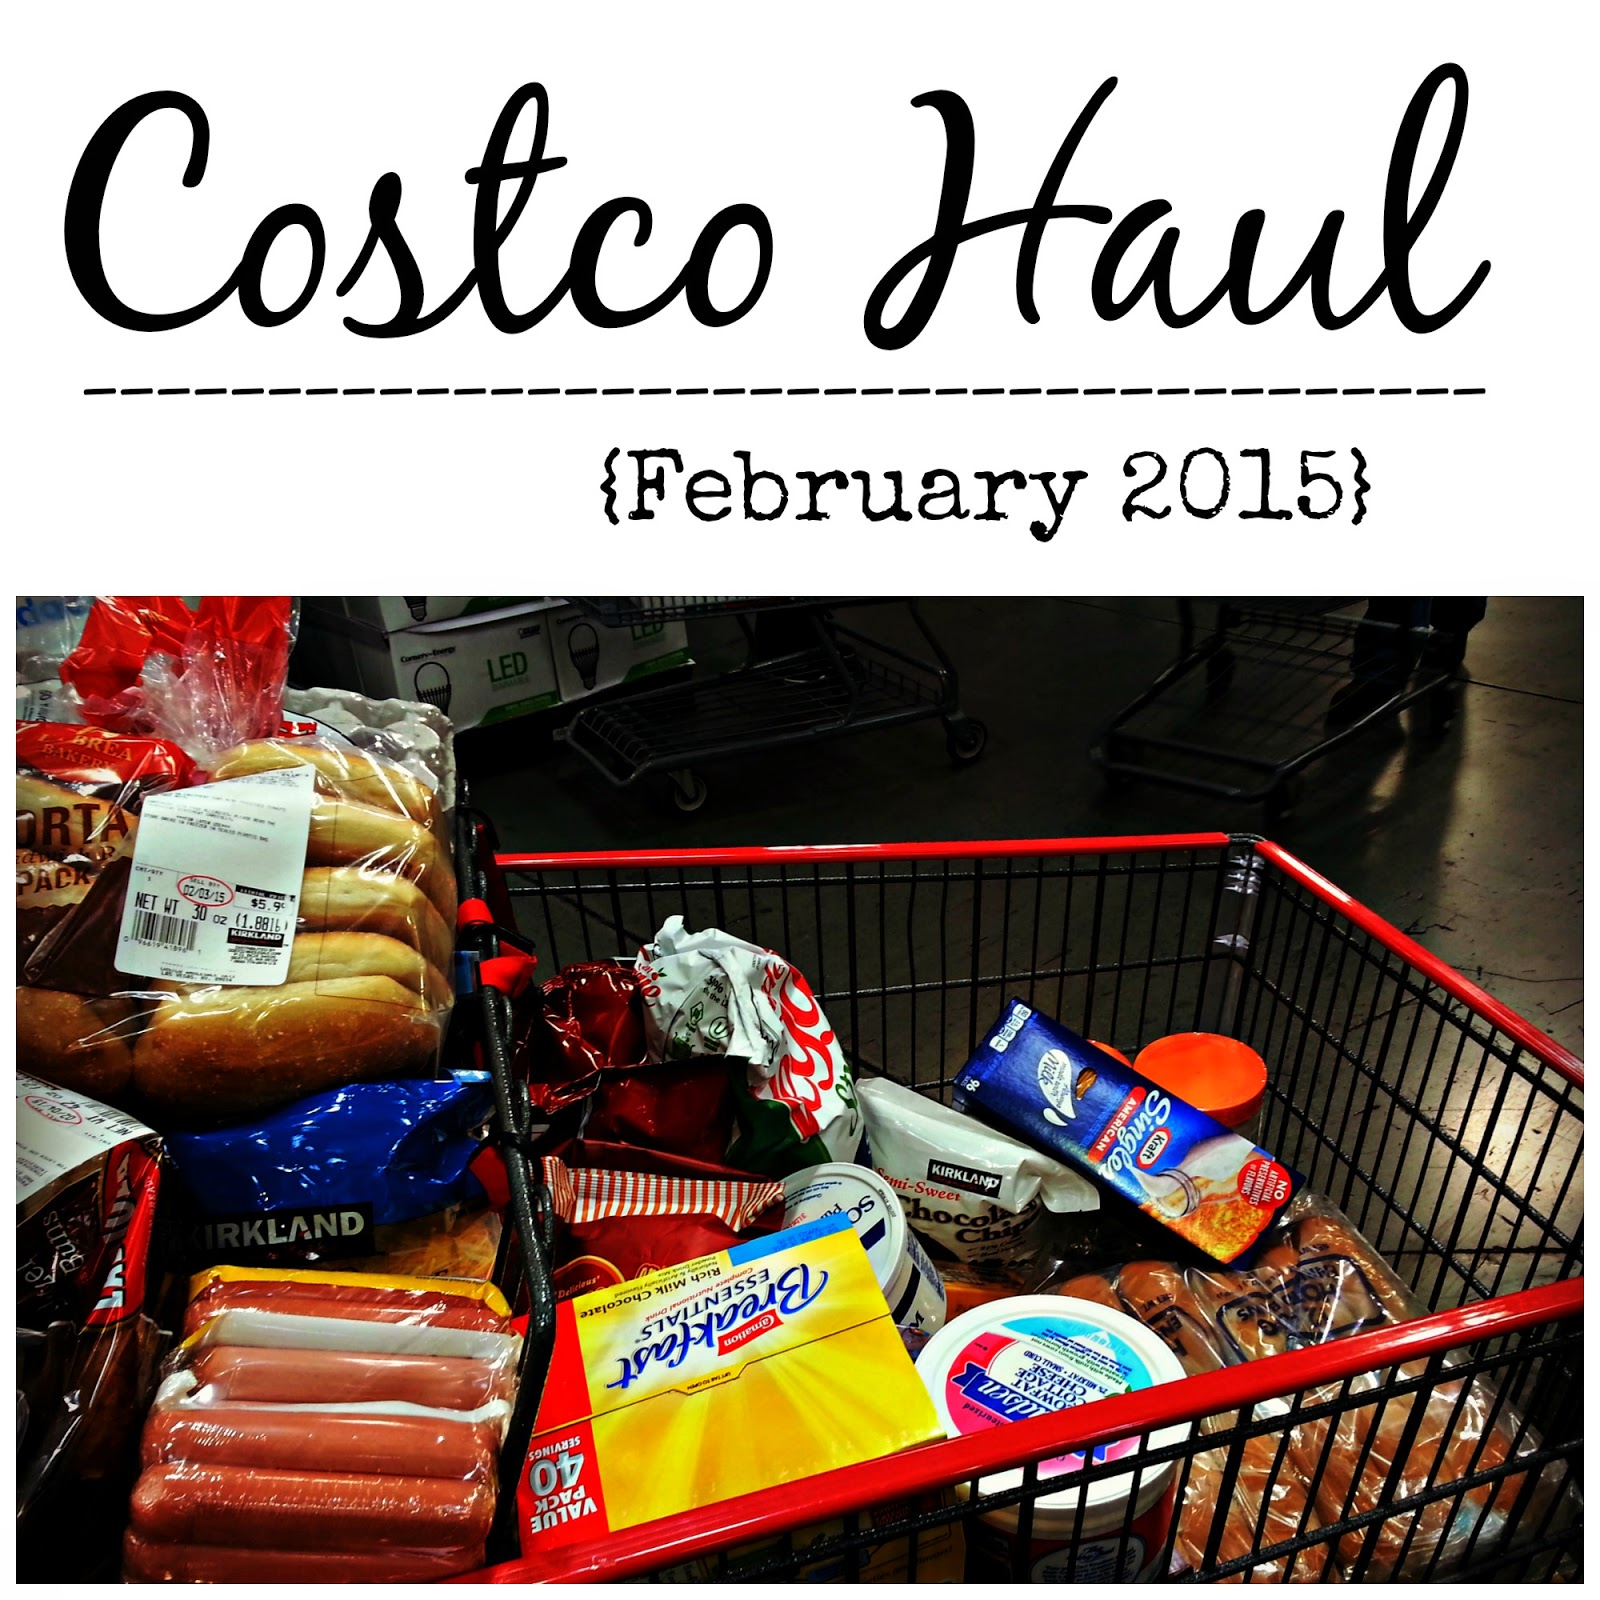 Costco Grocery Haul February 2015 -- VIDEO